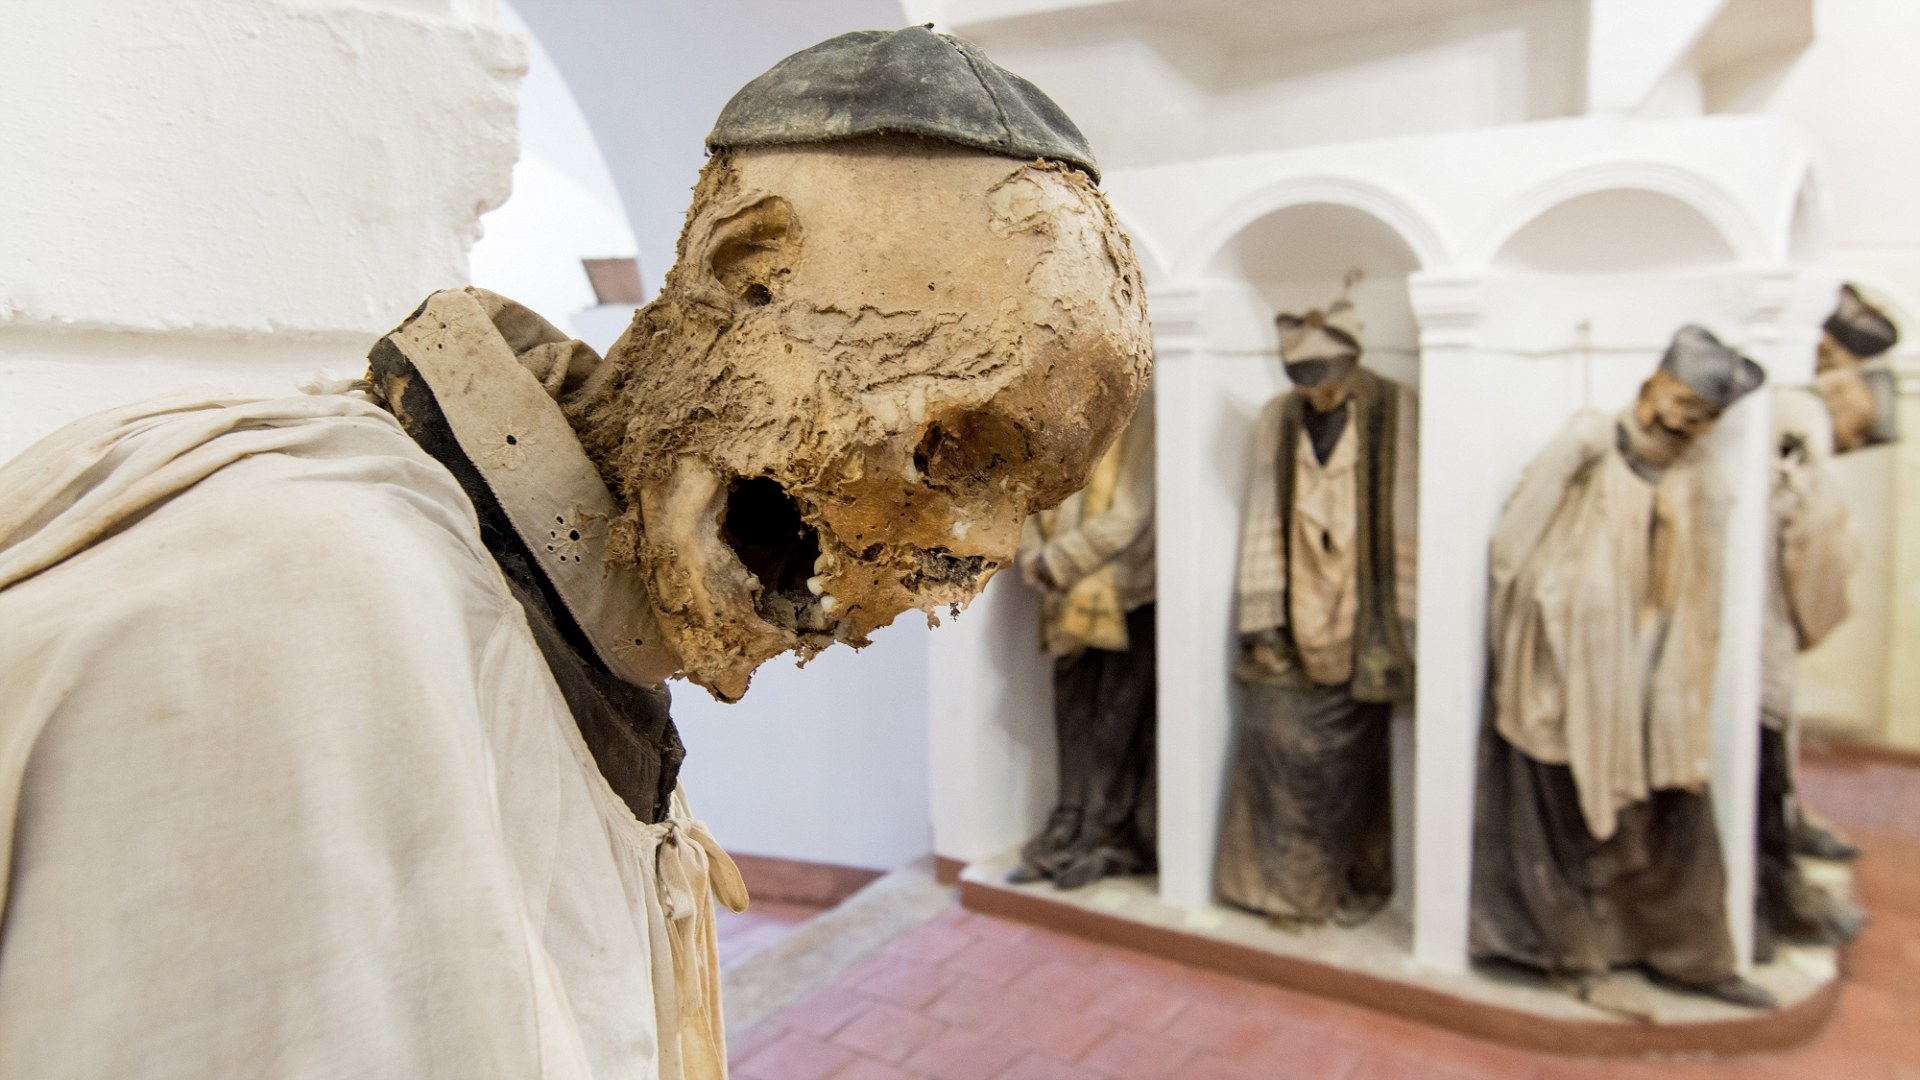 GANGI, ITALY - July 03, 2016: The crypt of the mother church, where all priests are buried mummified. ; Shutterstock ID 456120115